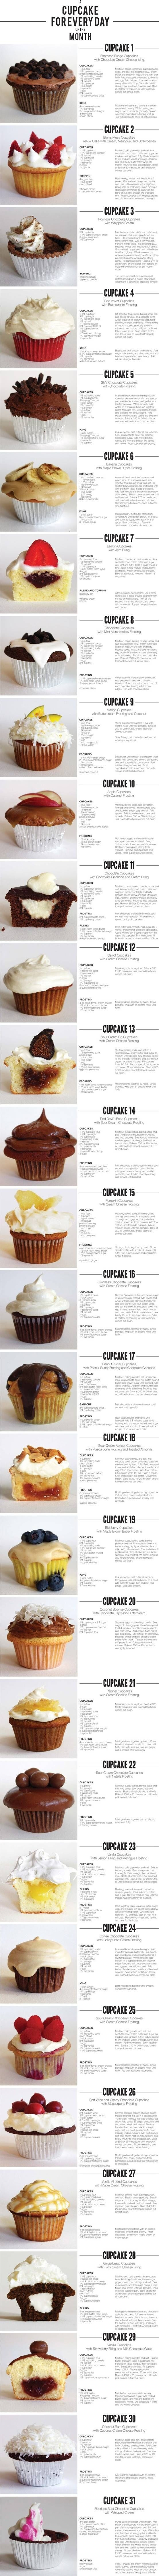 31 cupcakes   16, 23, 24, 28... I'm in trouble!